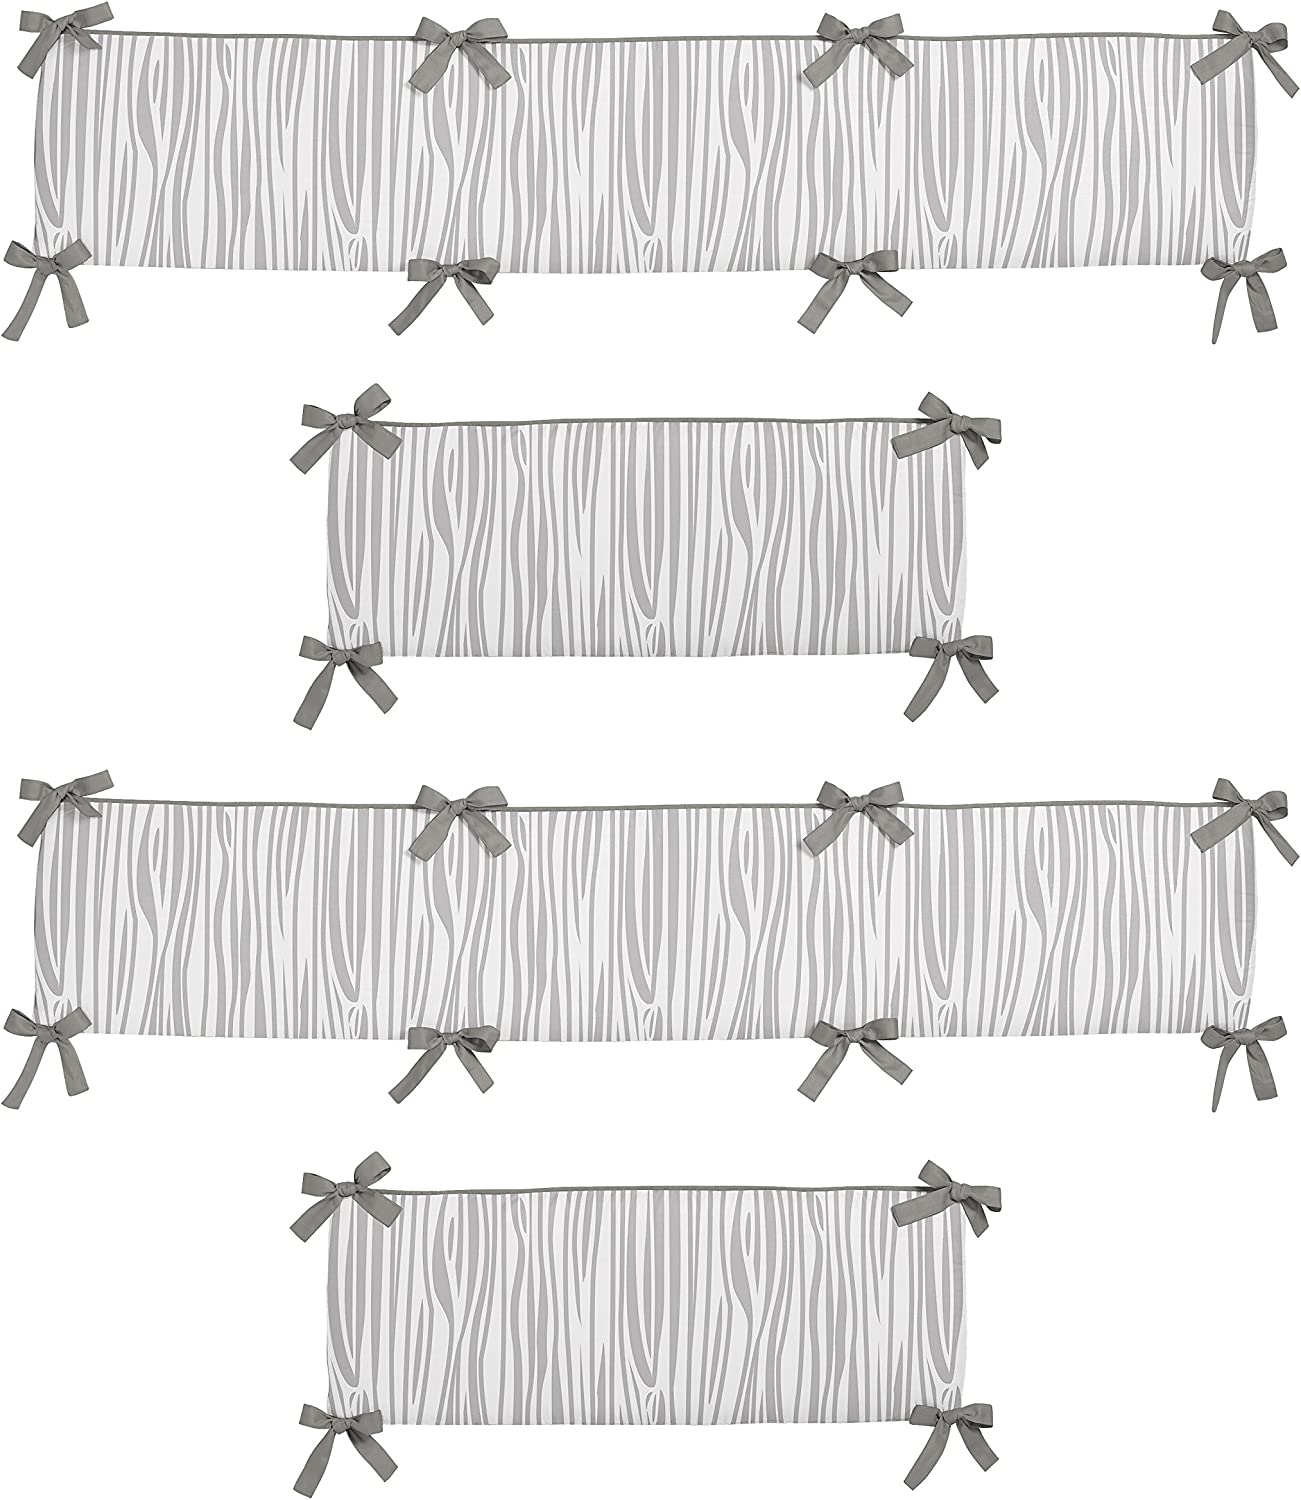 Sweet Jojo Designs Grey and White Wood Grain Baby Crib Bumper Pad for Woodsy Collection by